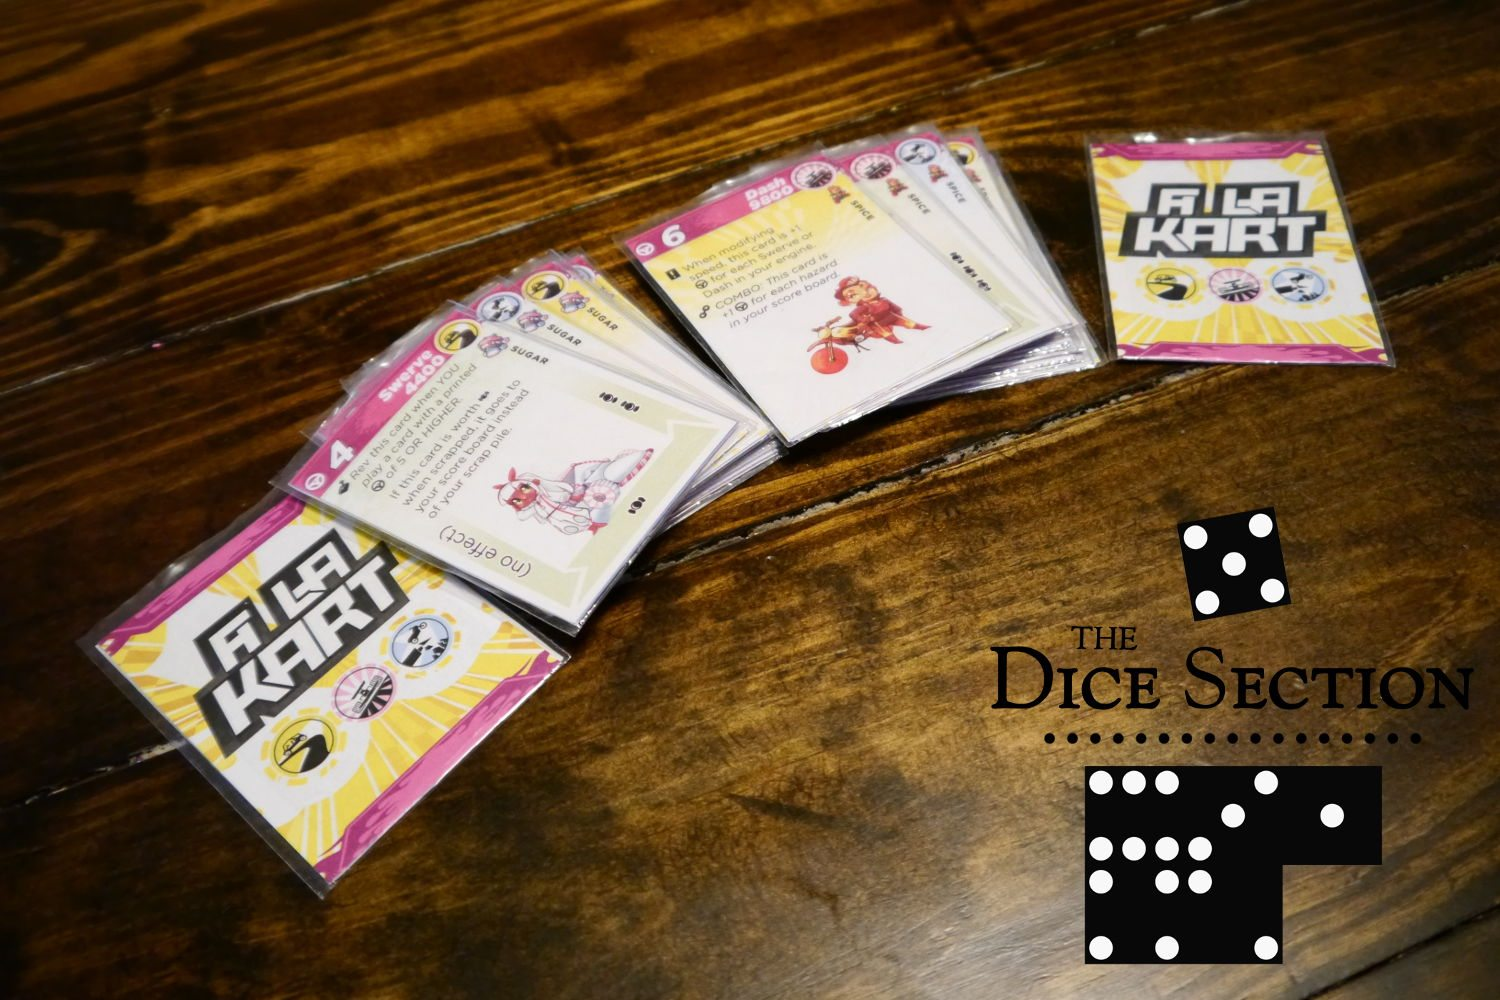 The Dice Section: A La Kart by Daniel Solis